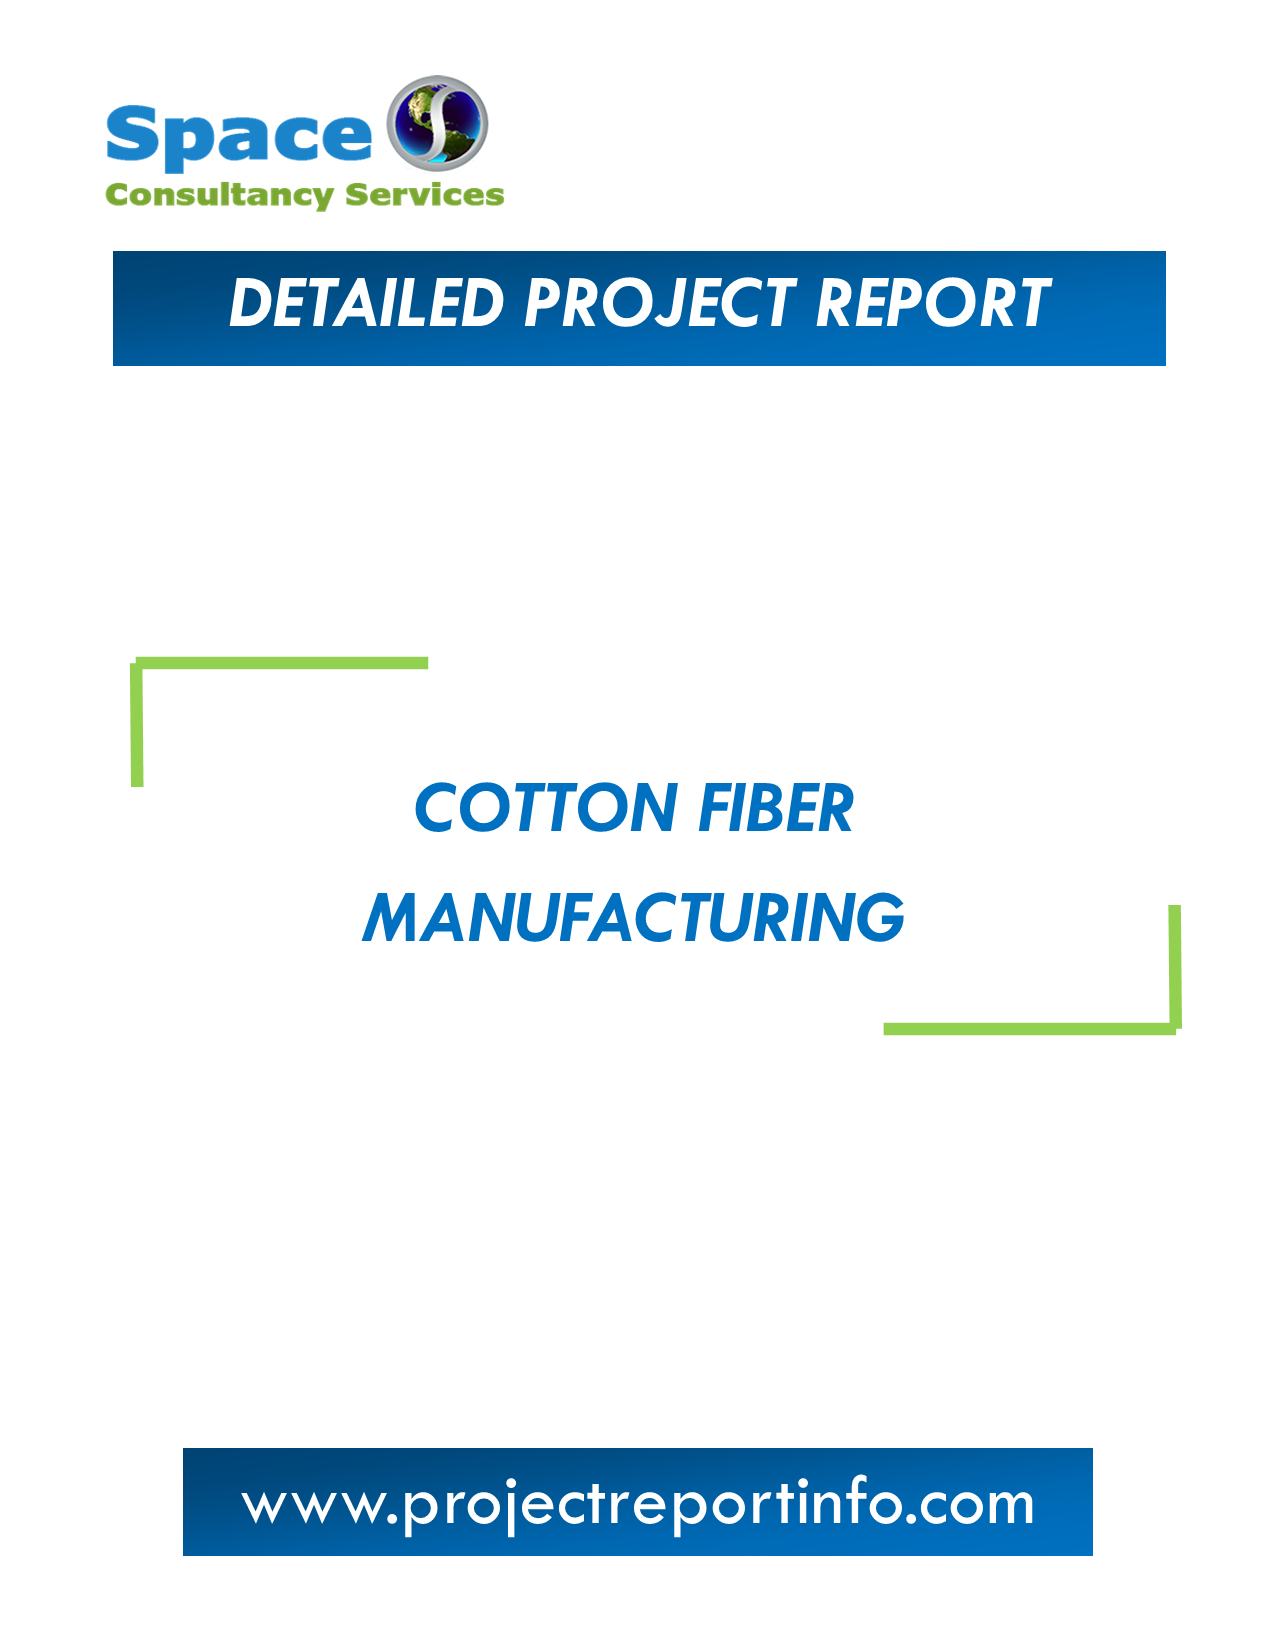 Project Report on Cotton Fiber Manufacturing